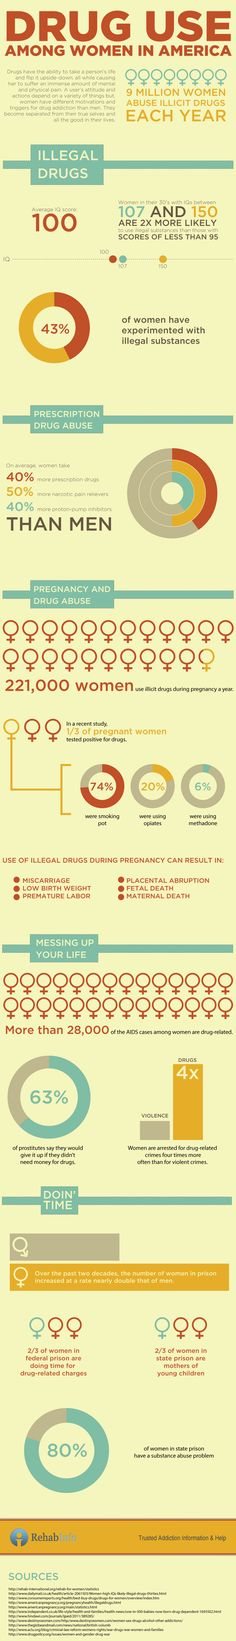 Drug Abuse Infograph for Women in America